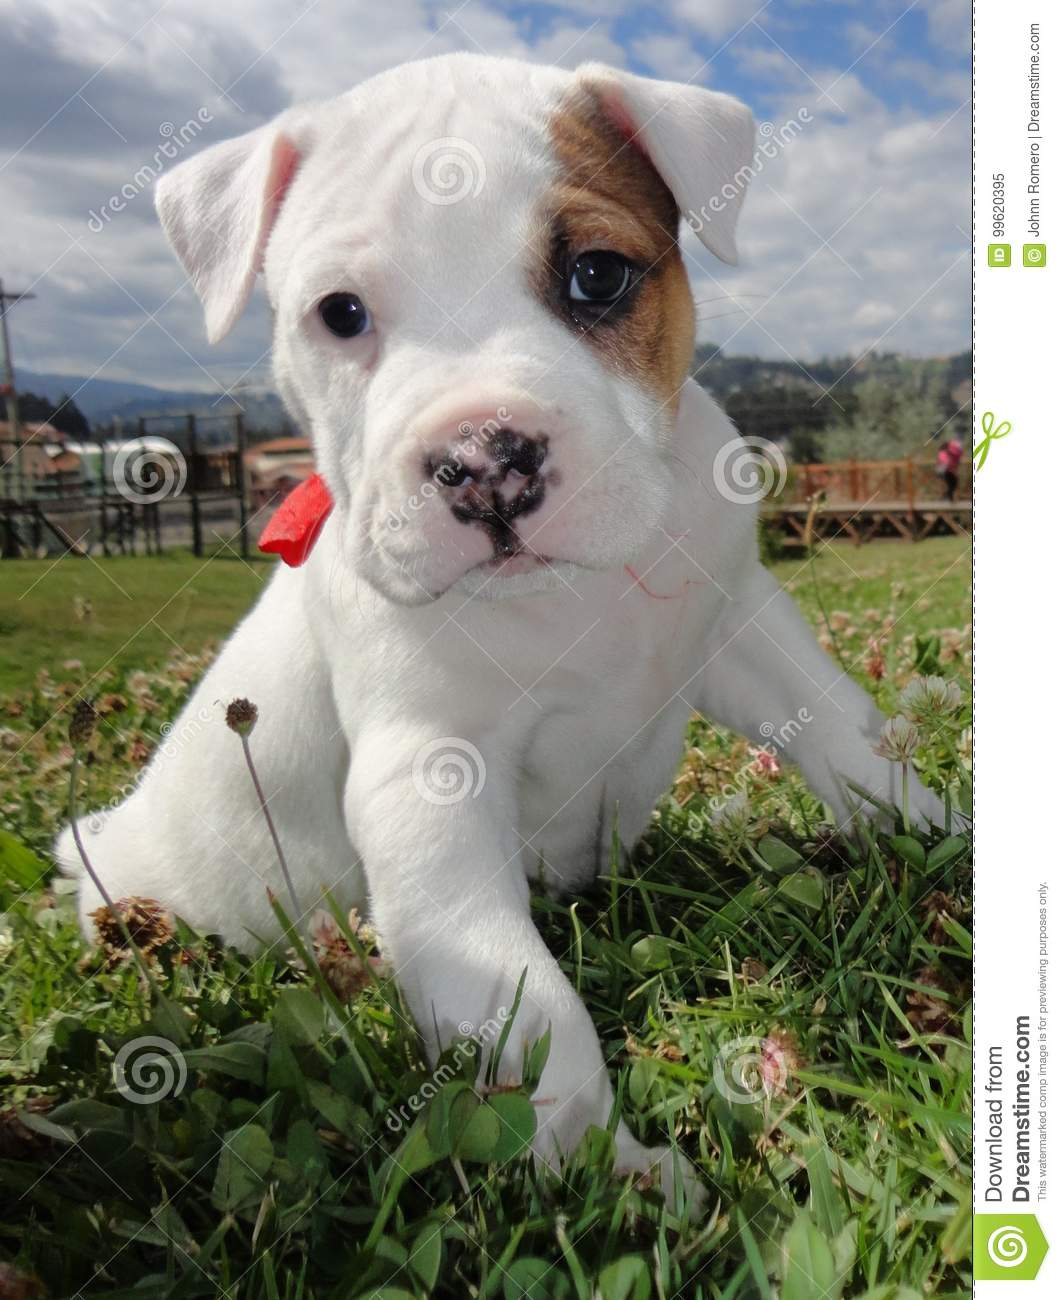 Dogo Argentino Puppy stock image  Image of terrier, puppy - 99620395